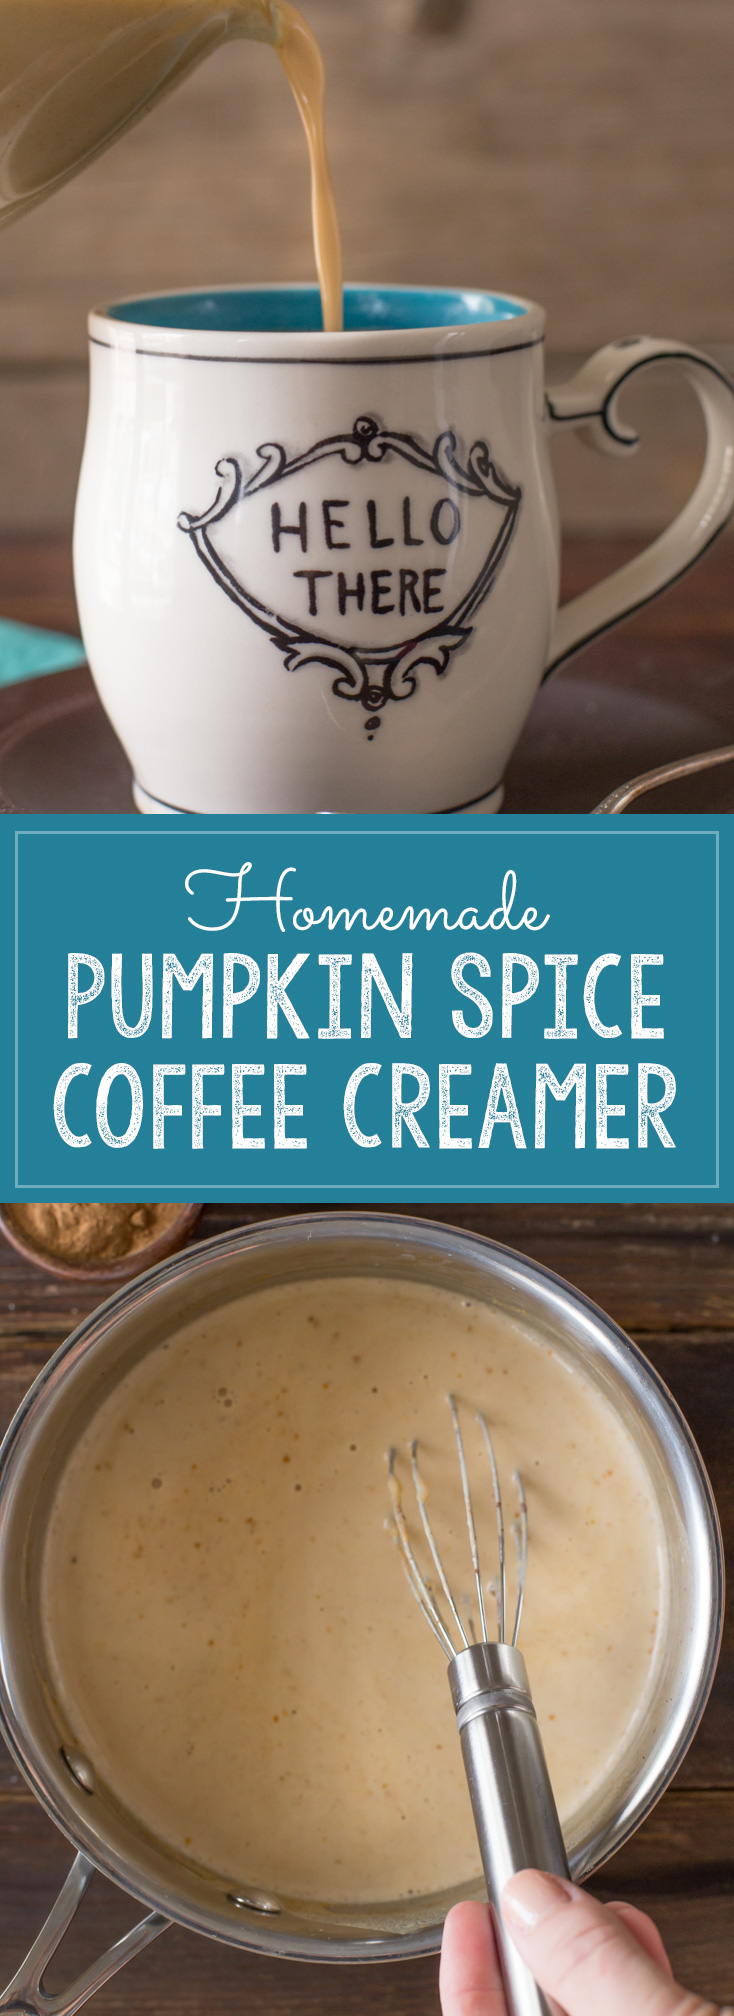 So easy to make with real pumpkin puree, warm and cozy spices and maple syrup to add just the right touch of sweetness!